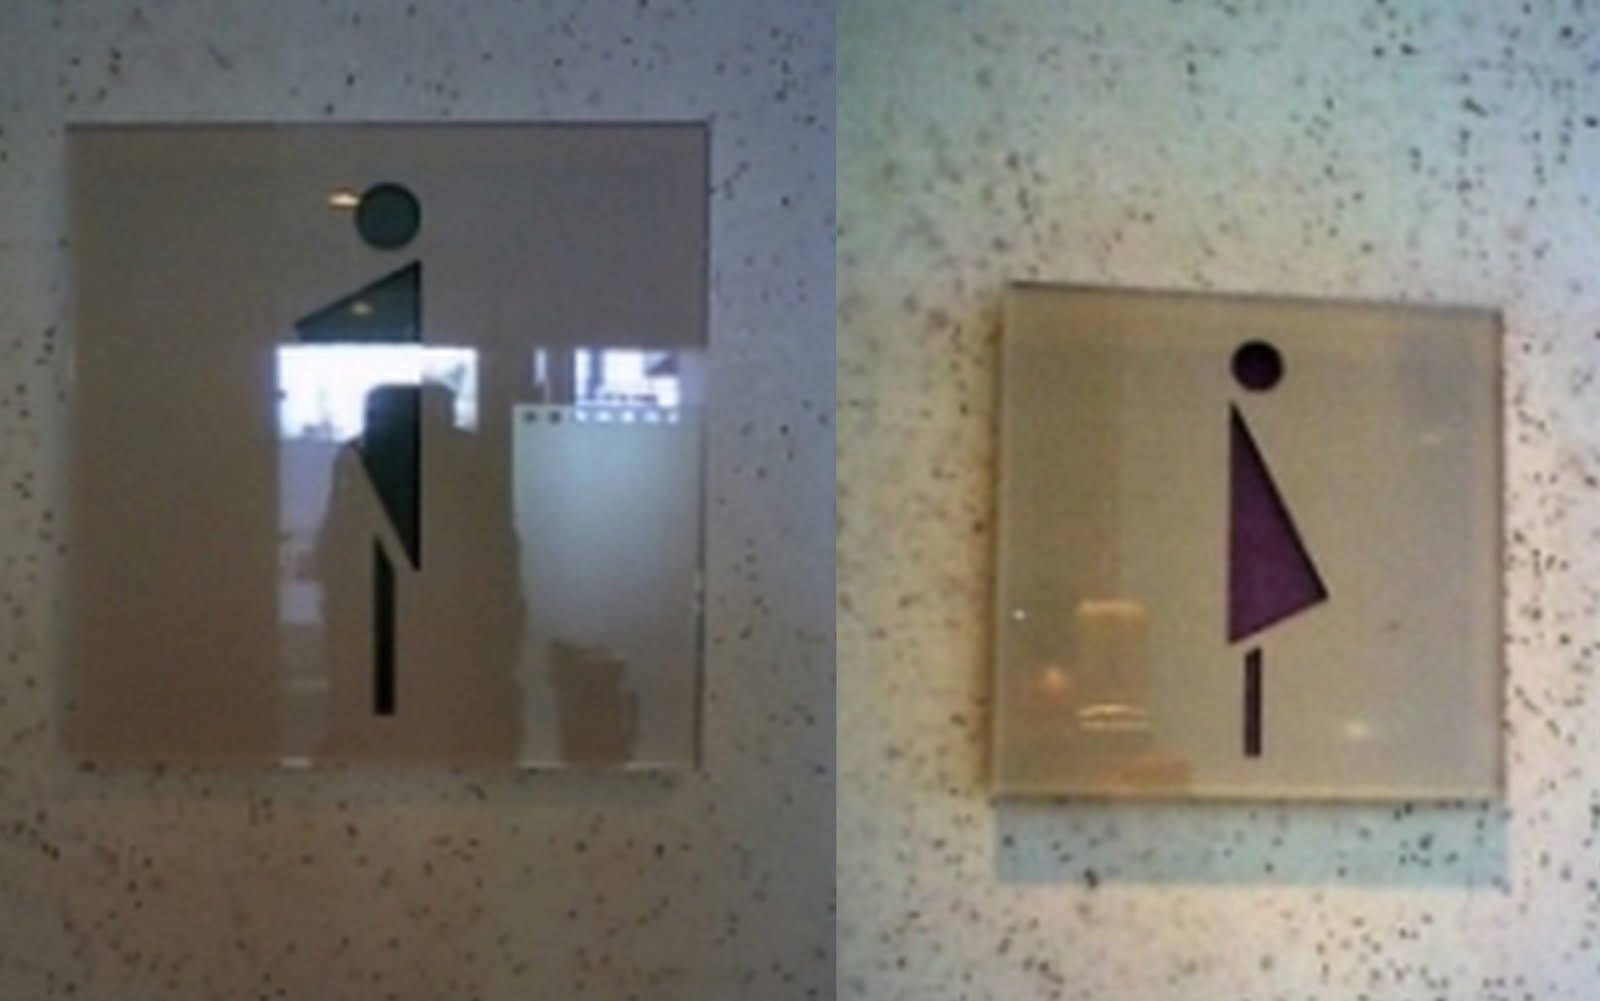 Bathroom Signs Circle And Triangle go where? sex, gender, and toilets - sociological images